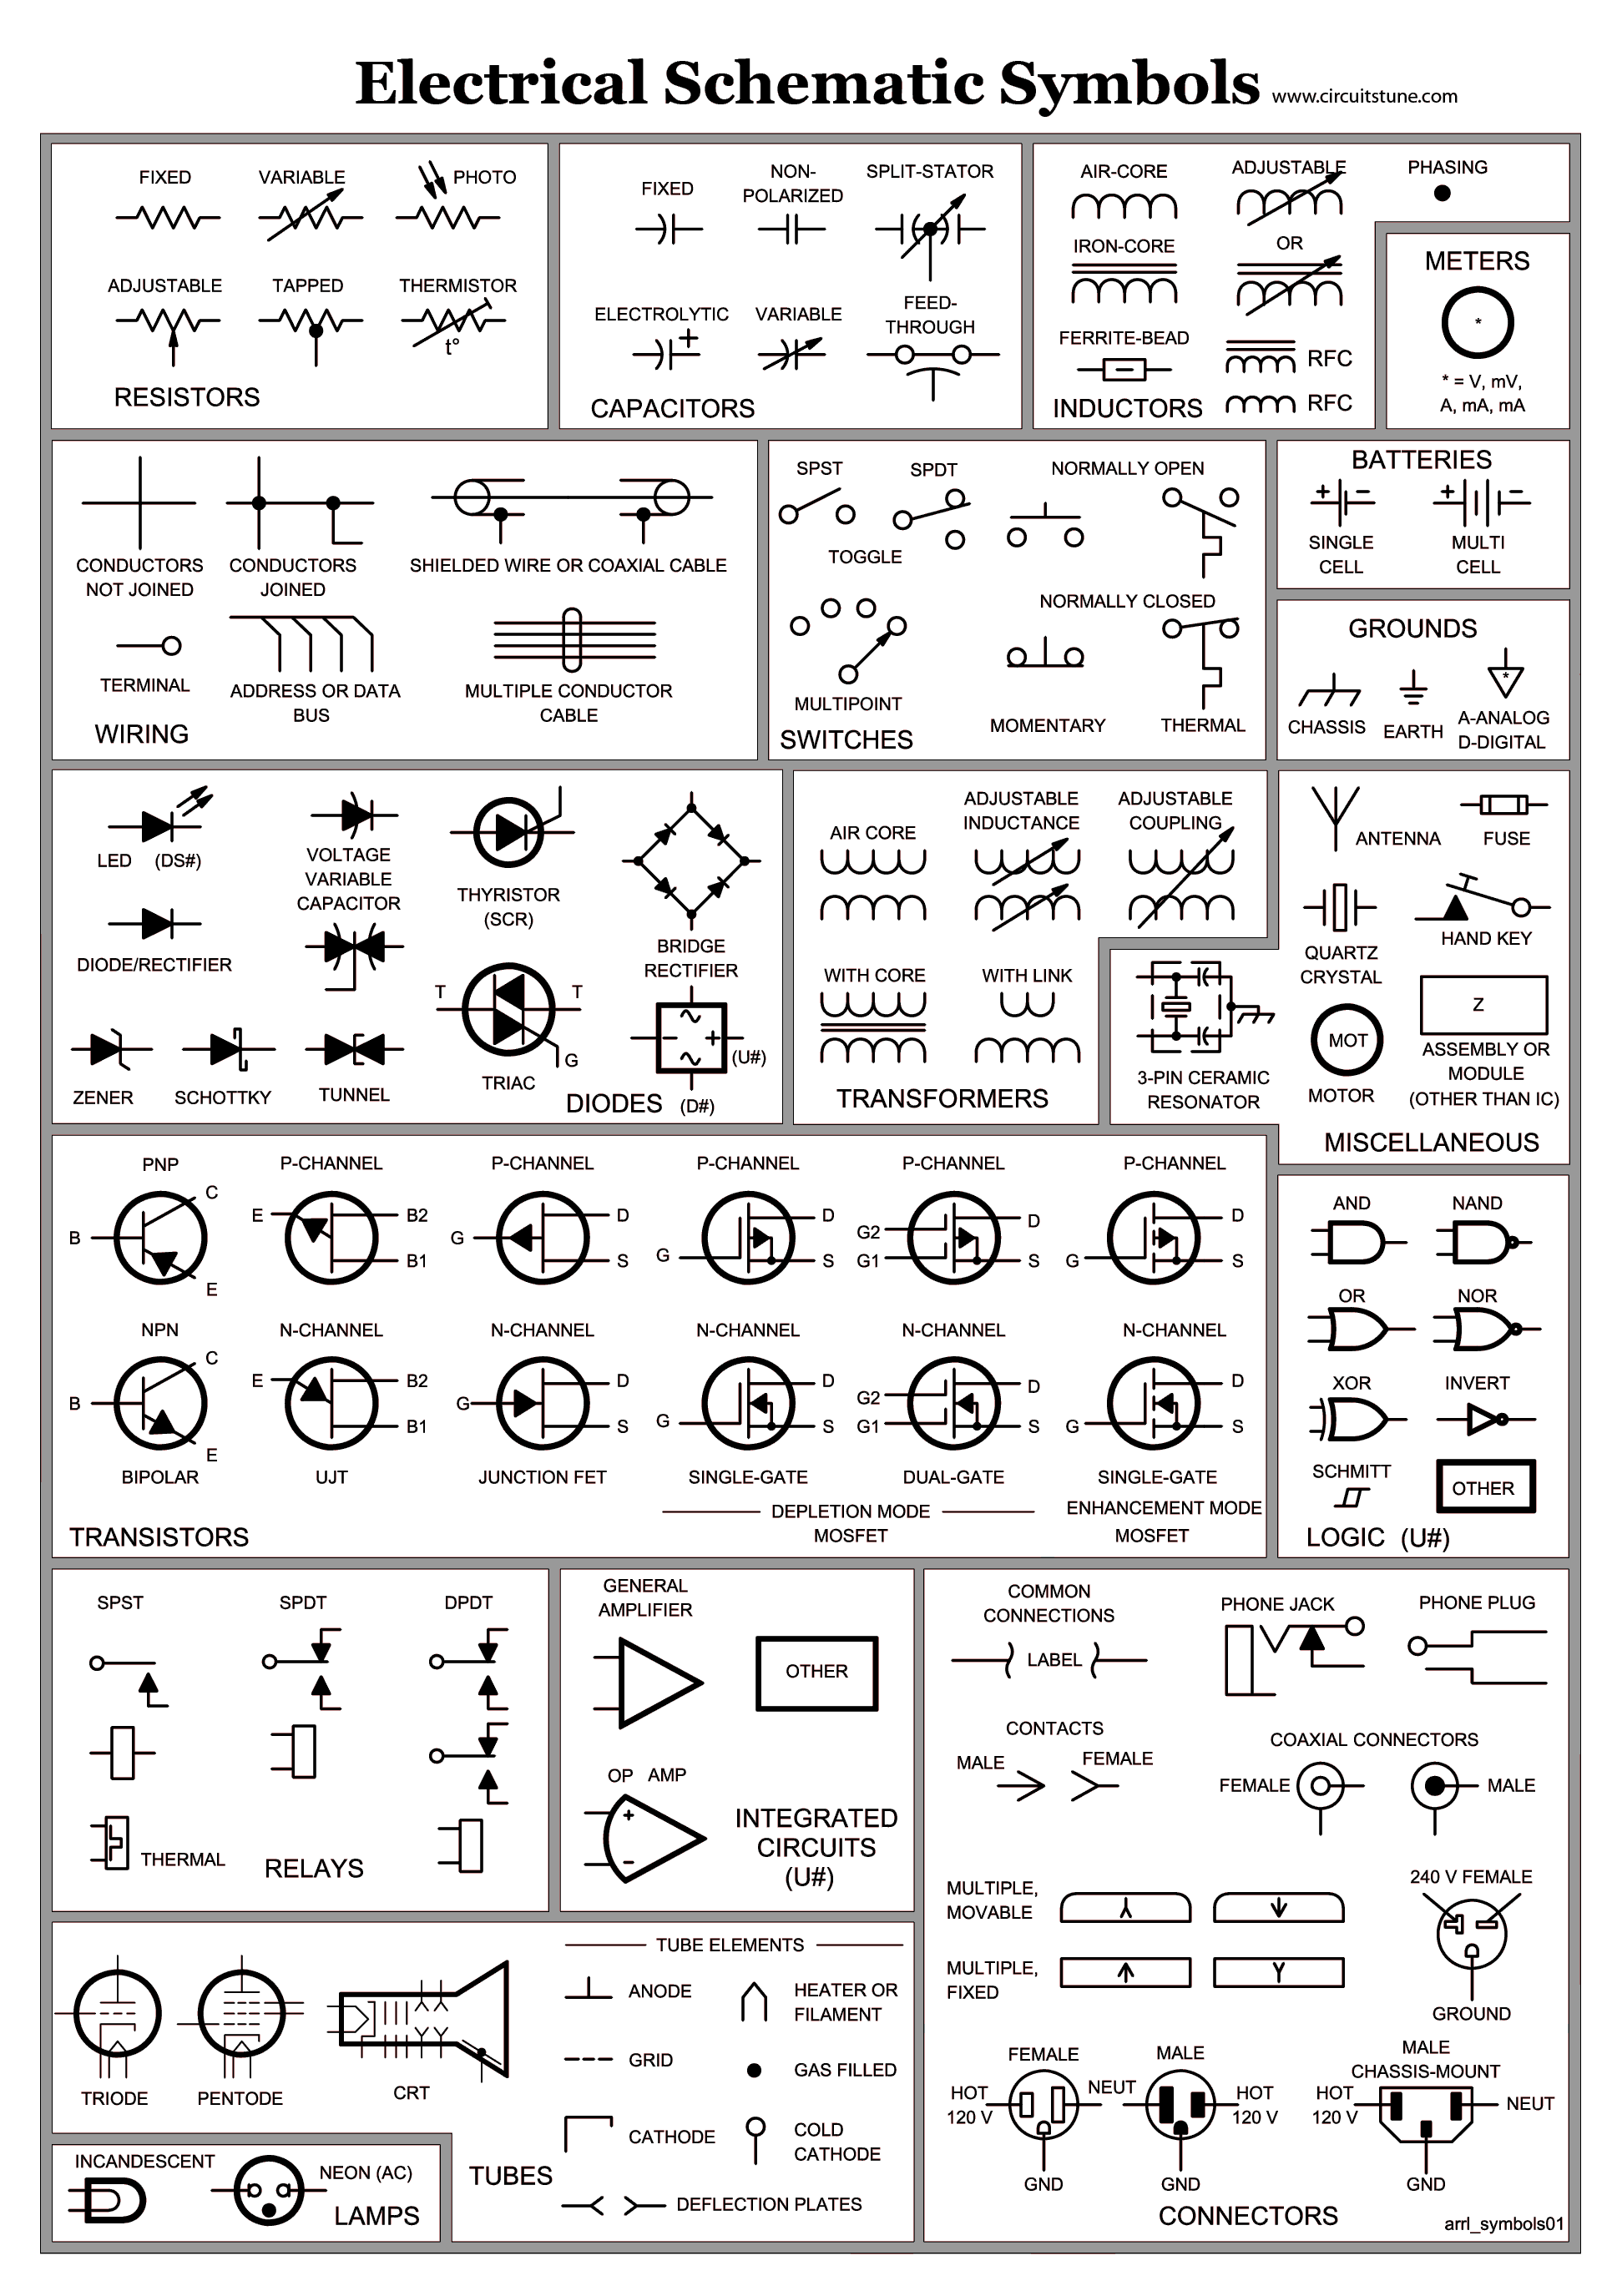 a65d176364692d2ebe913b58a654cfc3 electrical schematic symbols skinsquiggles pinterest symbols house wiring diagram symbols pdf at aneh.co